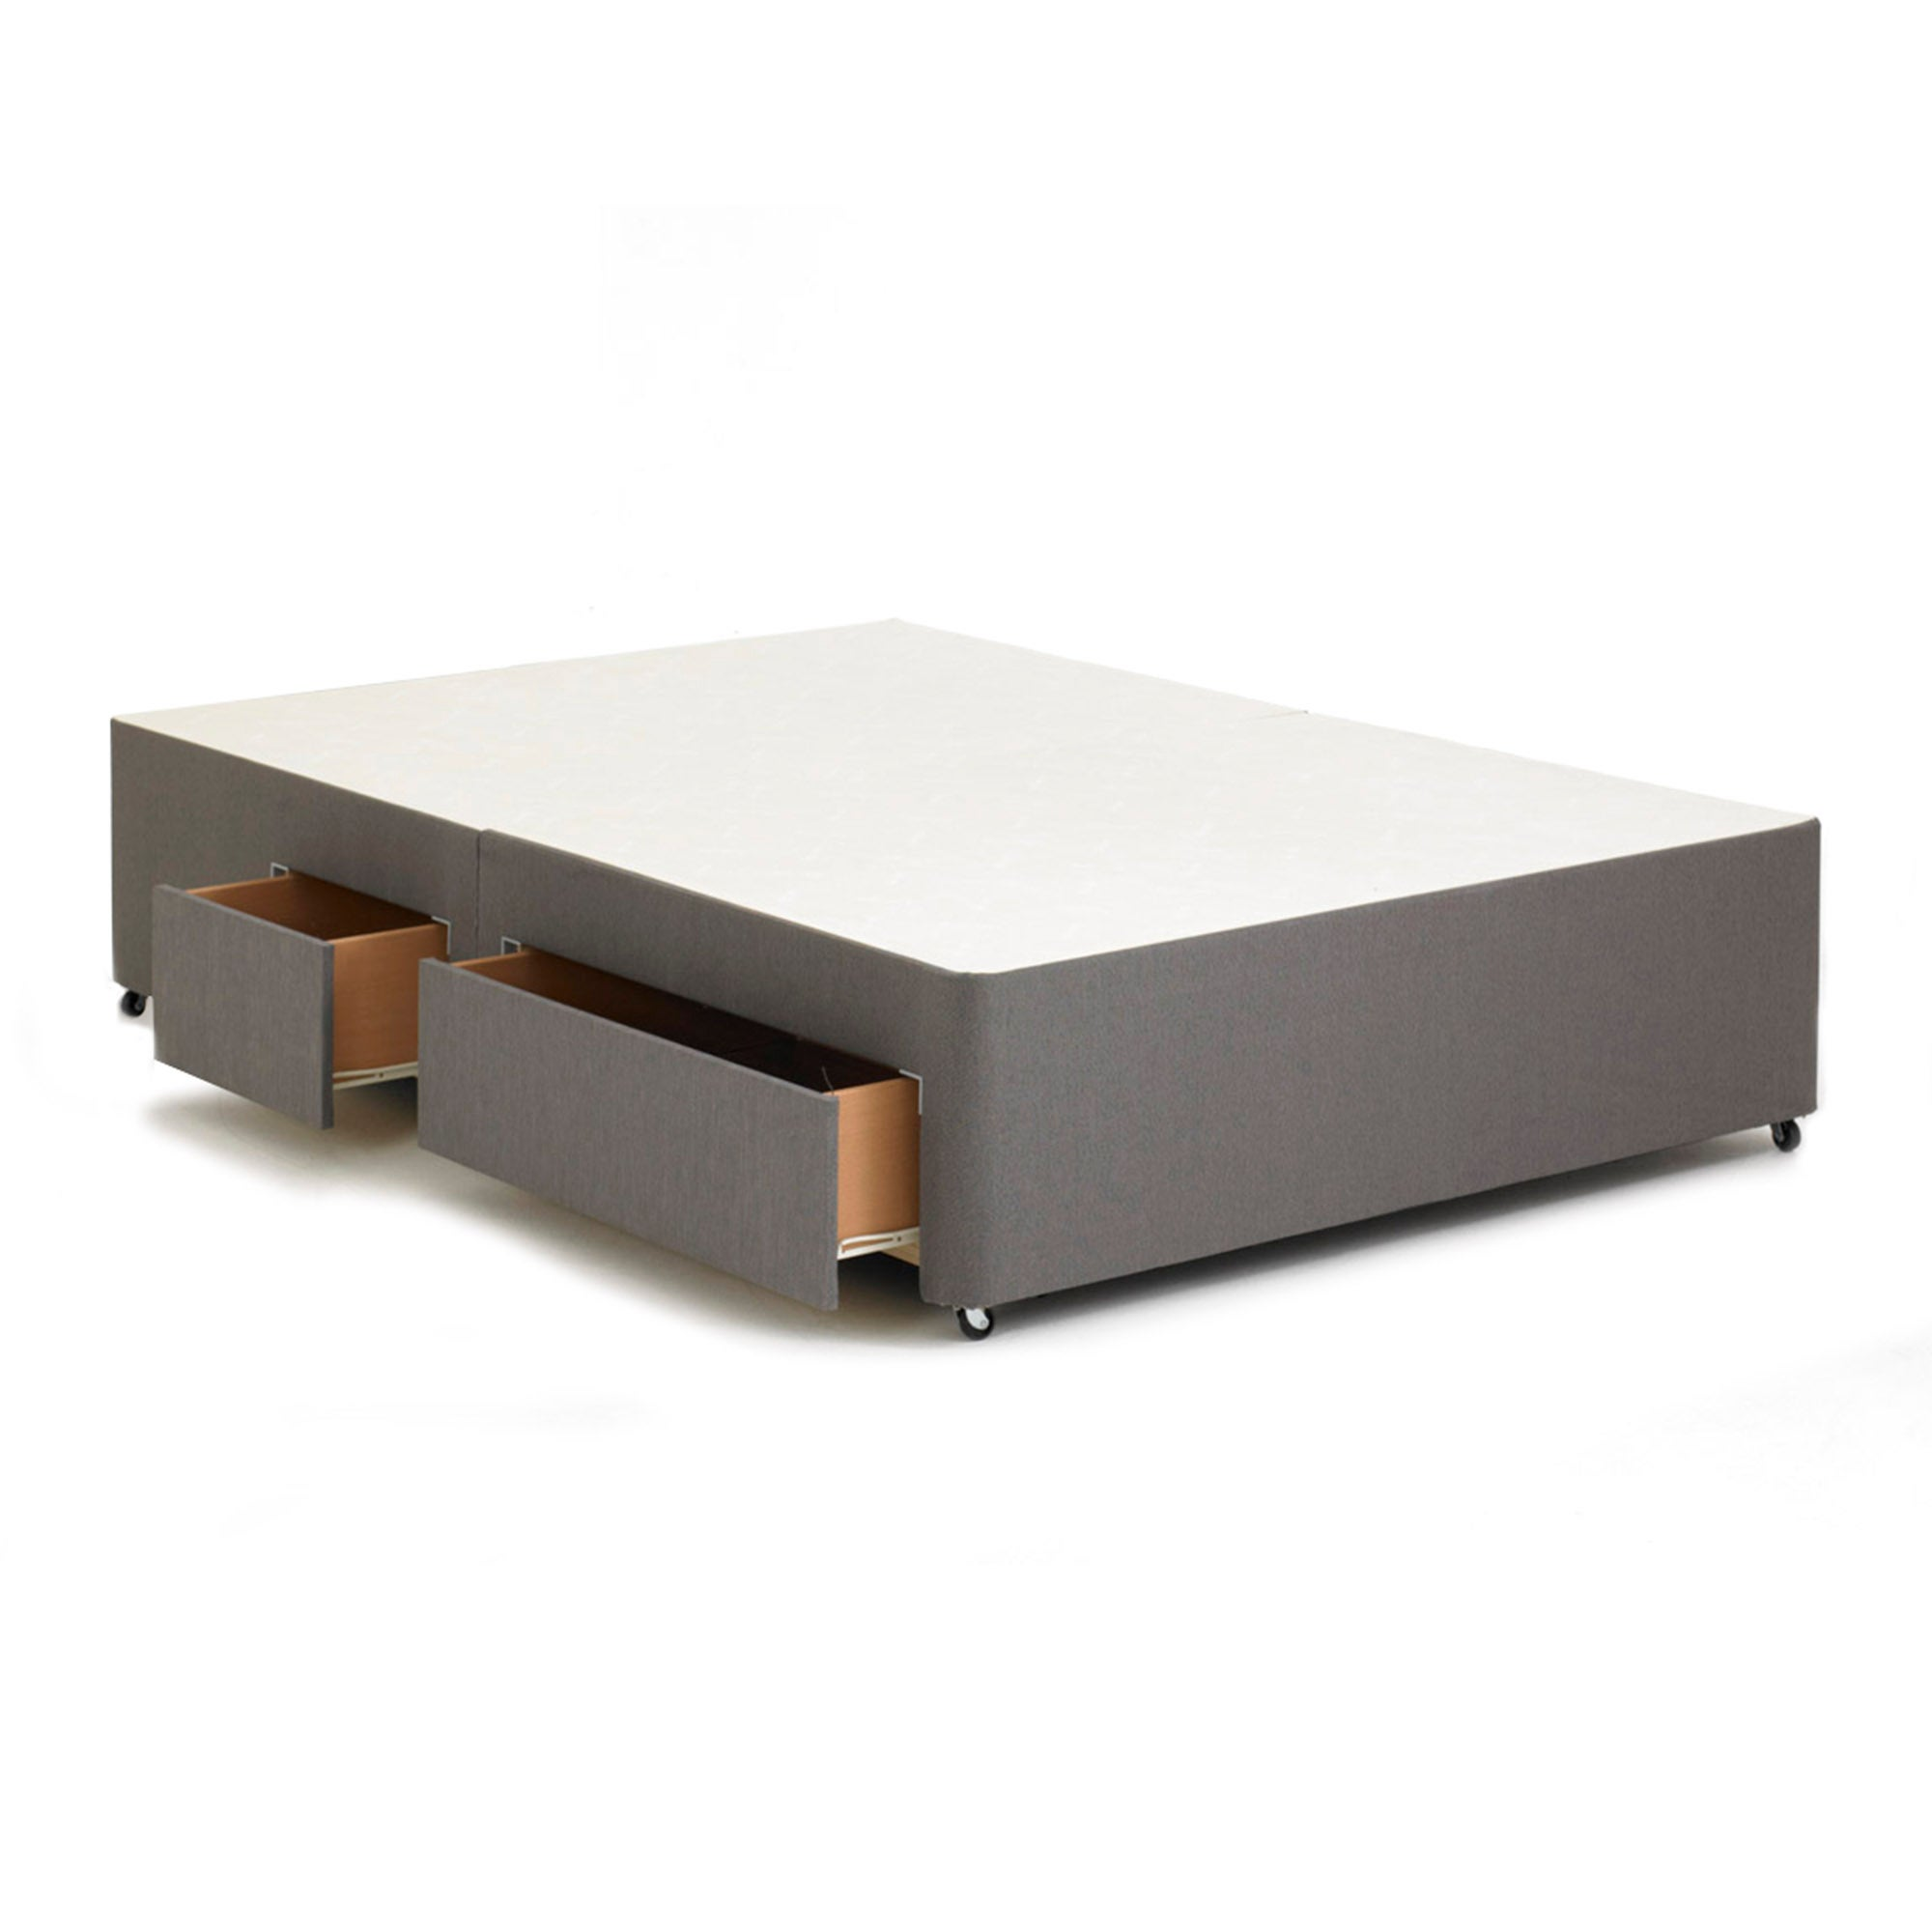 Sprung Divan Base with 2 Small Drawers & 2 Large Drawers